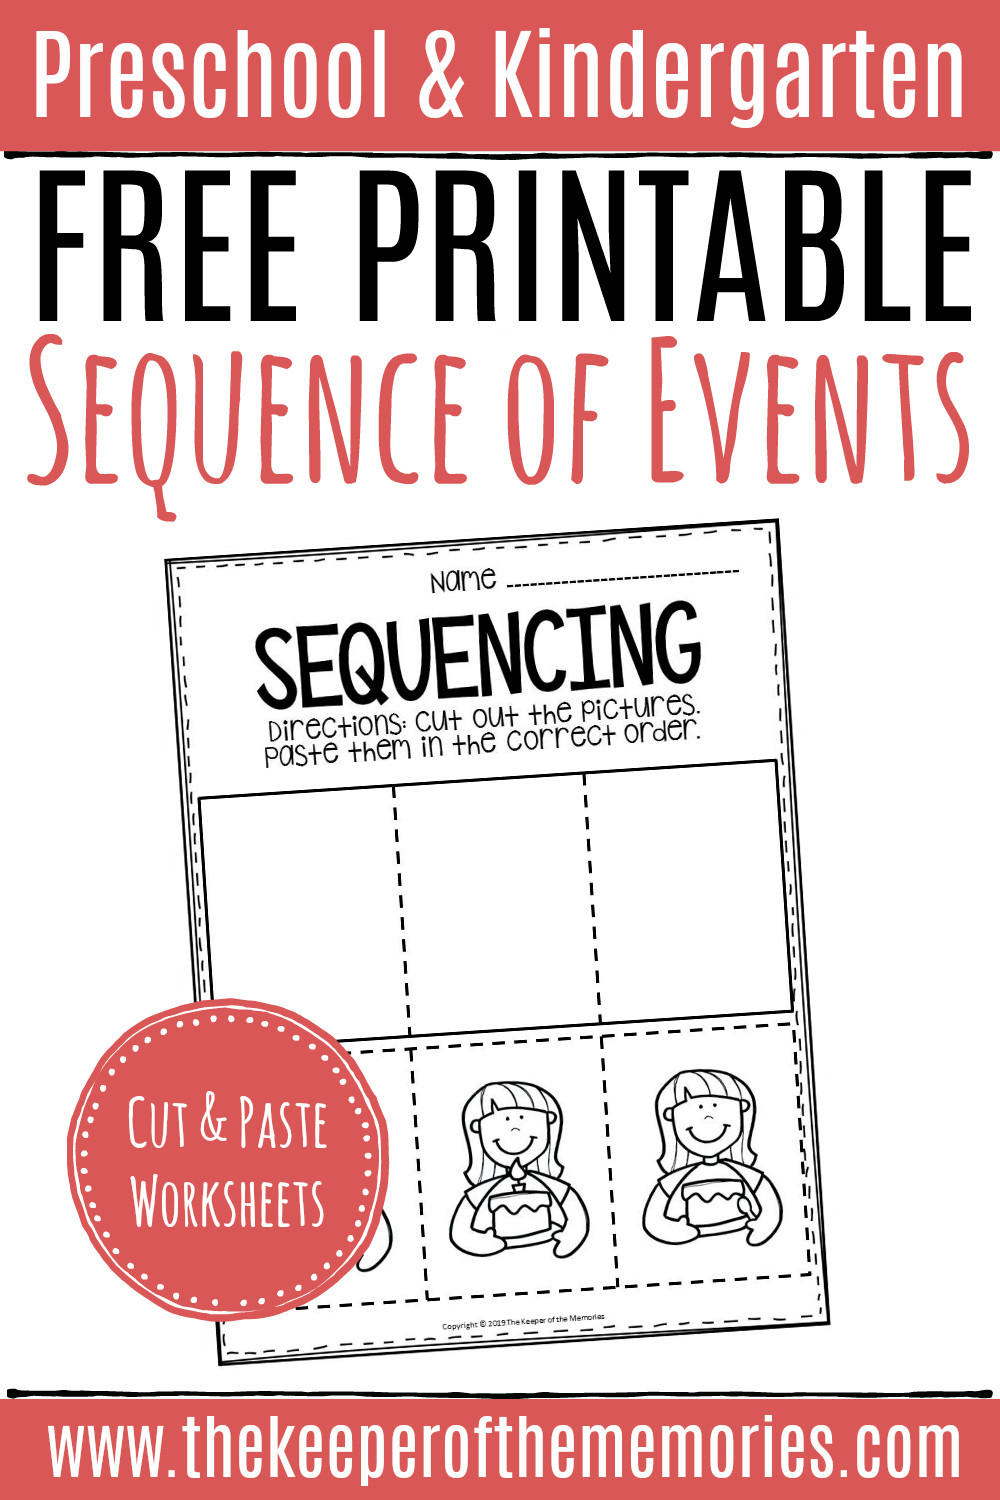 Kindergarten Sequencing Worksheet Free Printable Sequence Of events Worksheets